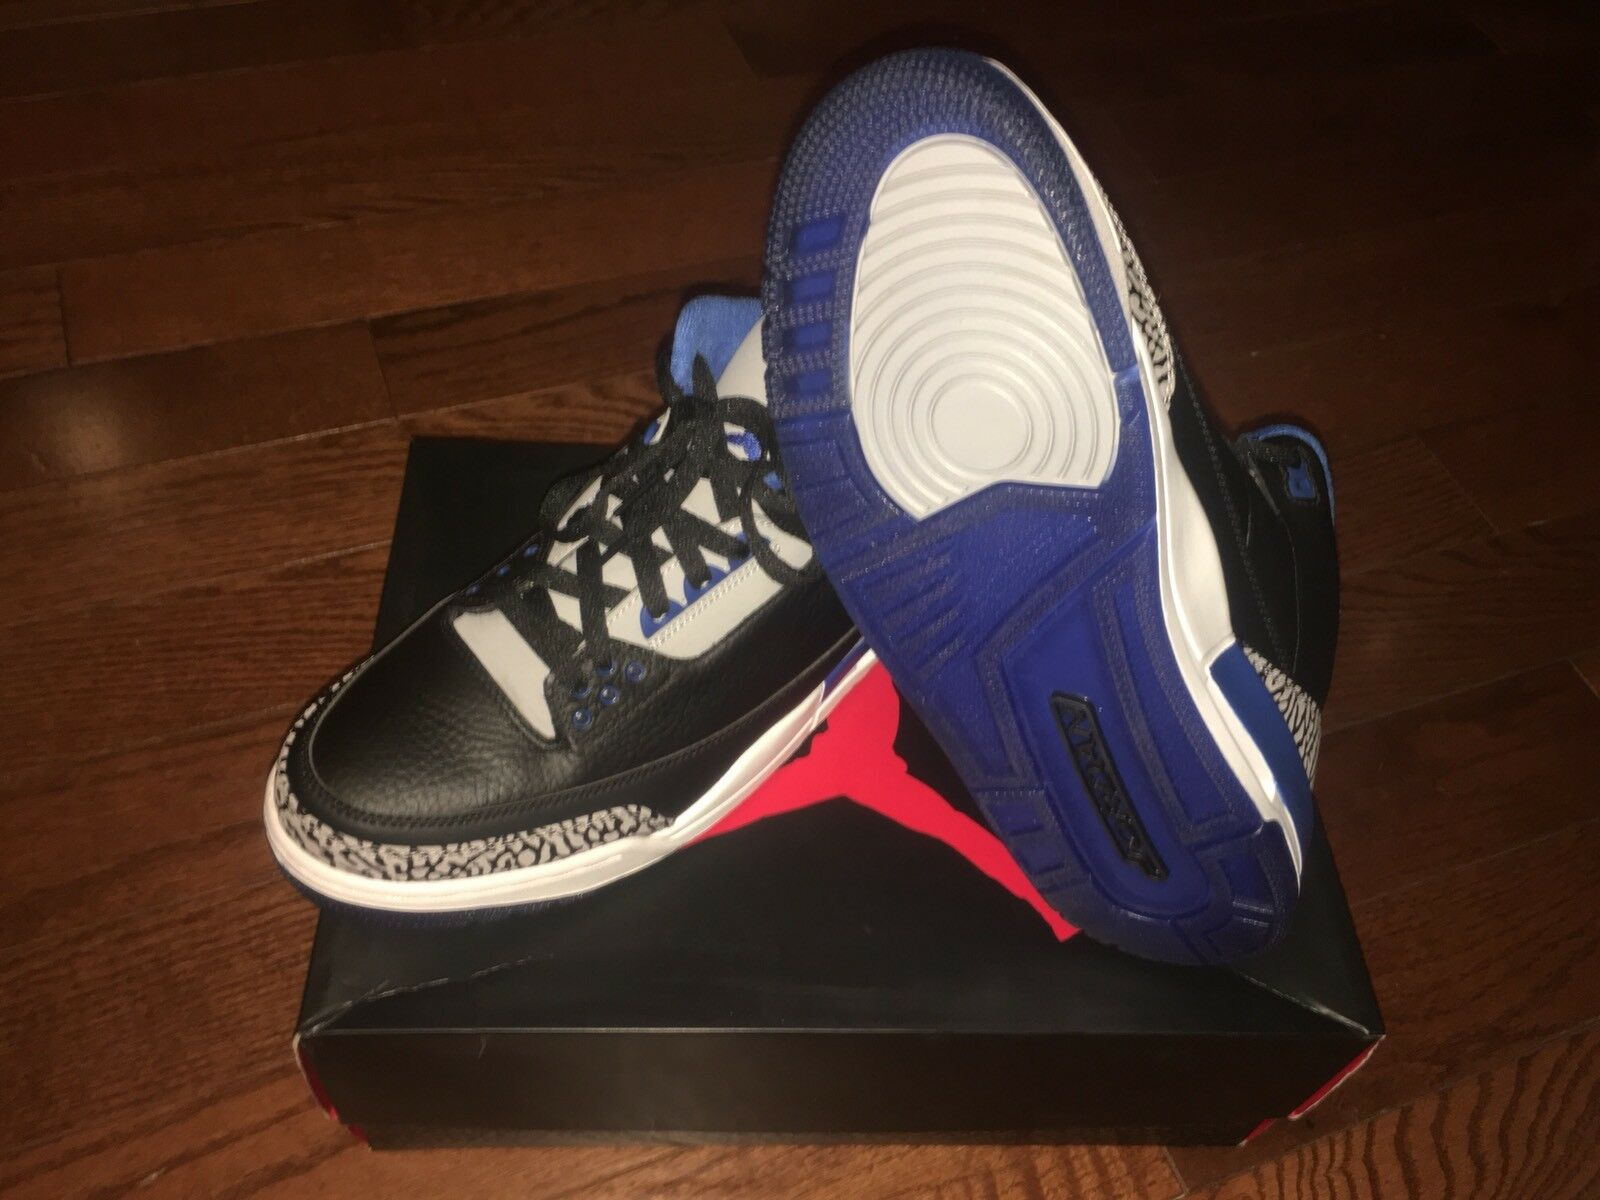 Air Jordan 3 (III) Sport bluee - Size 10.5 - 100% Authentic - New with Box